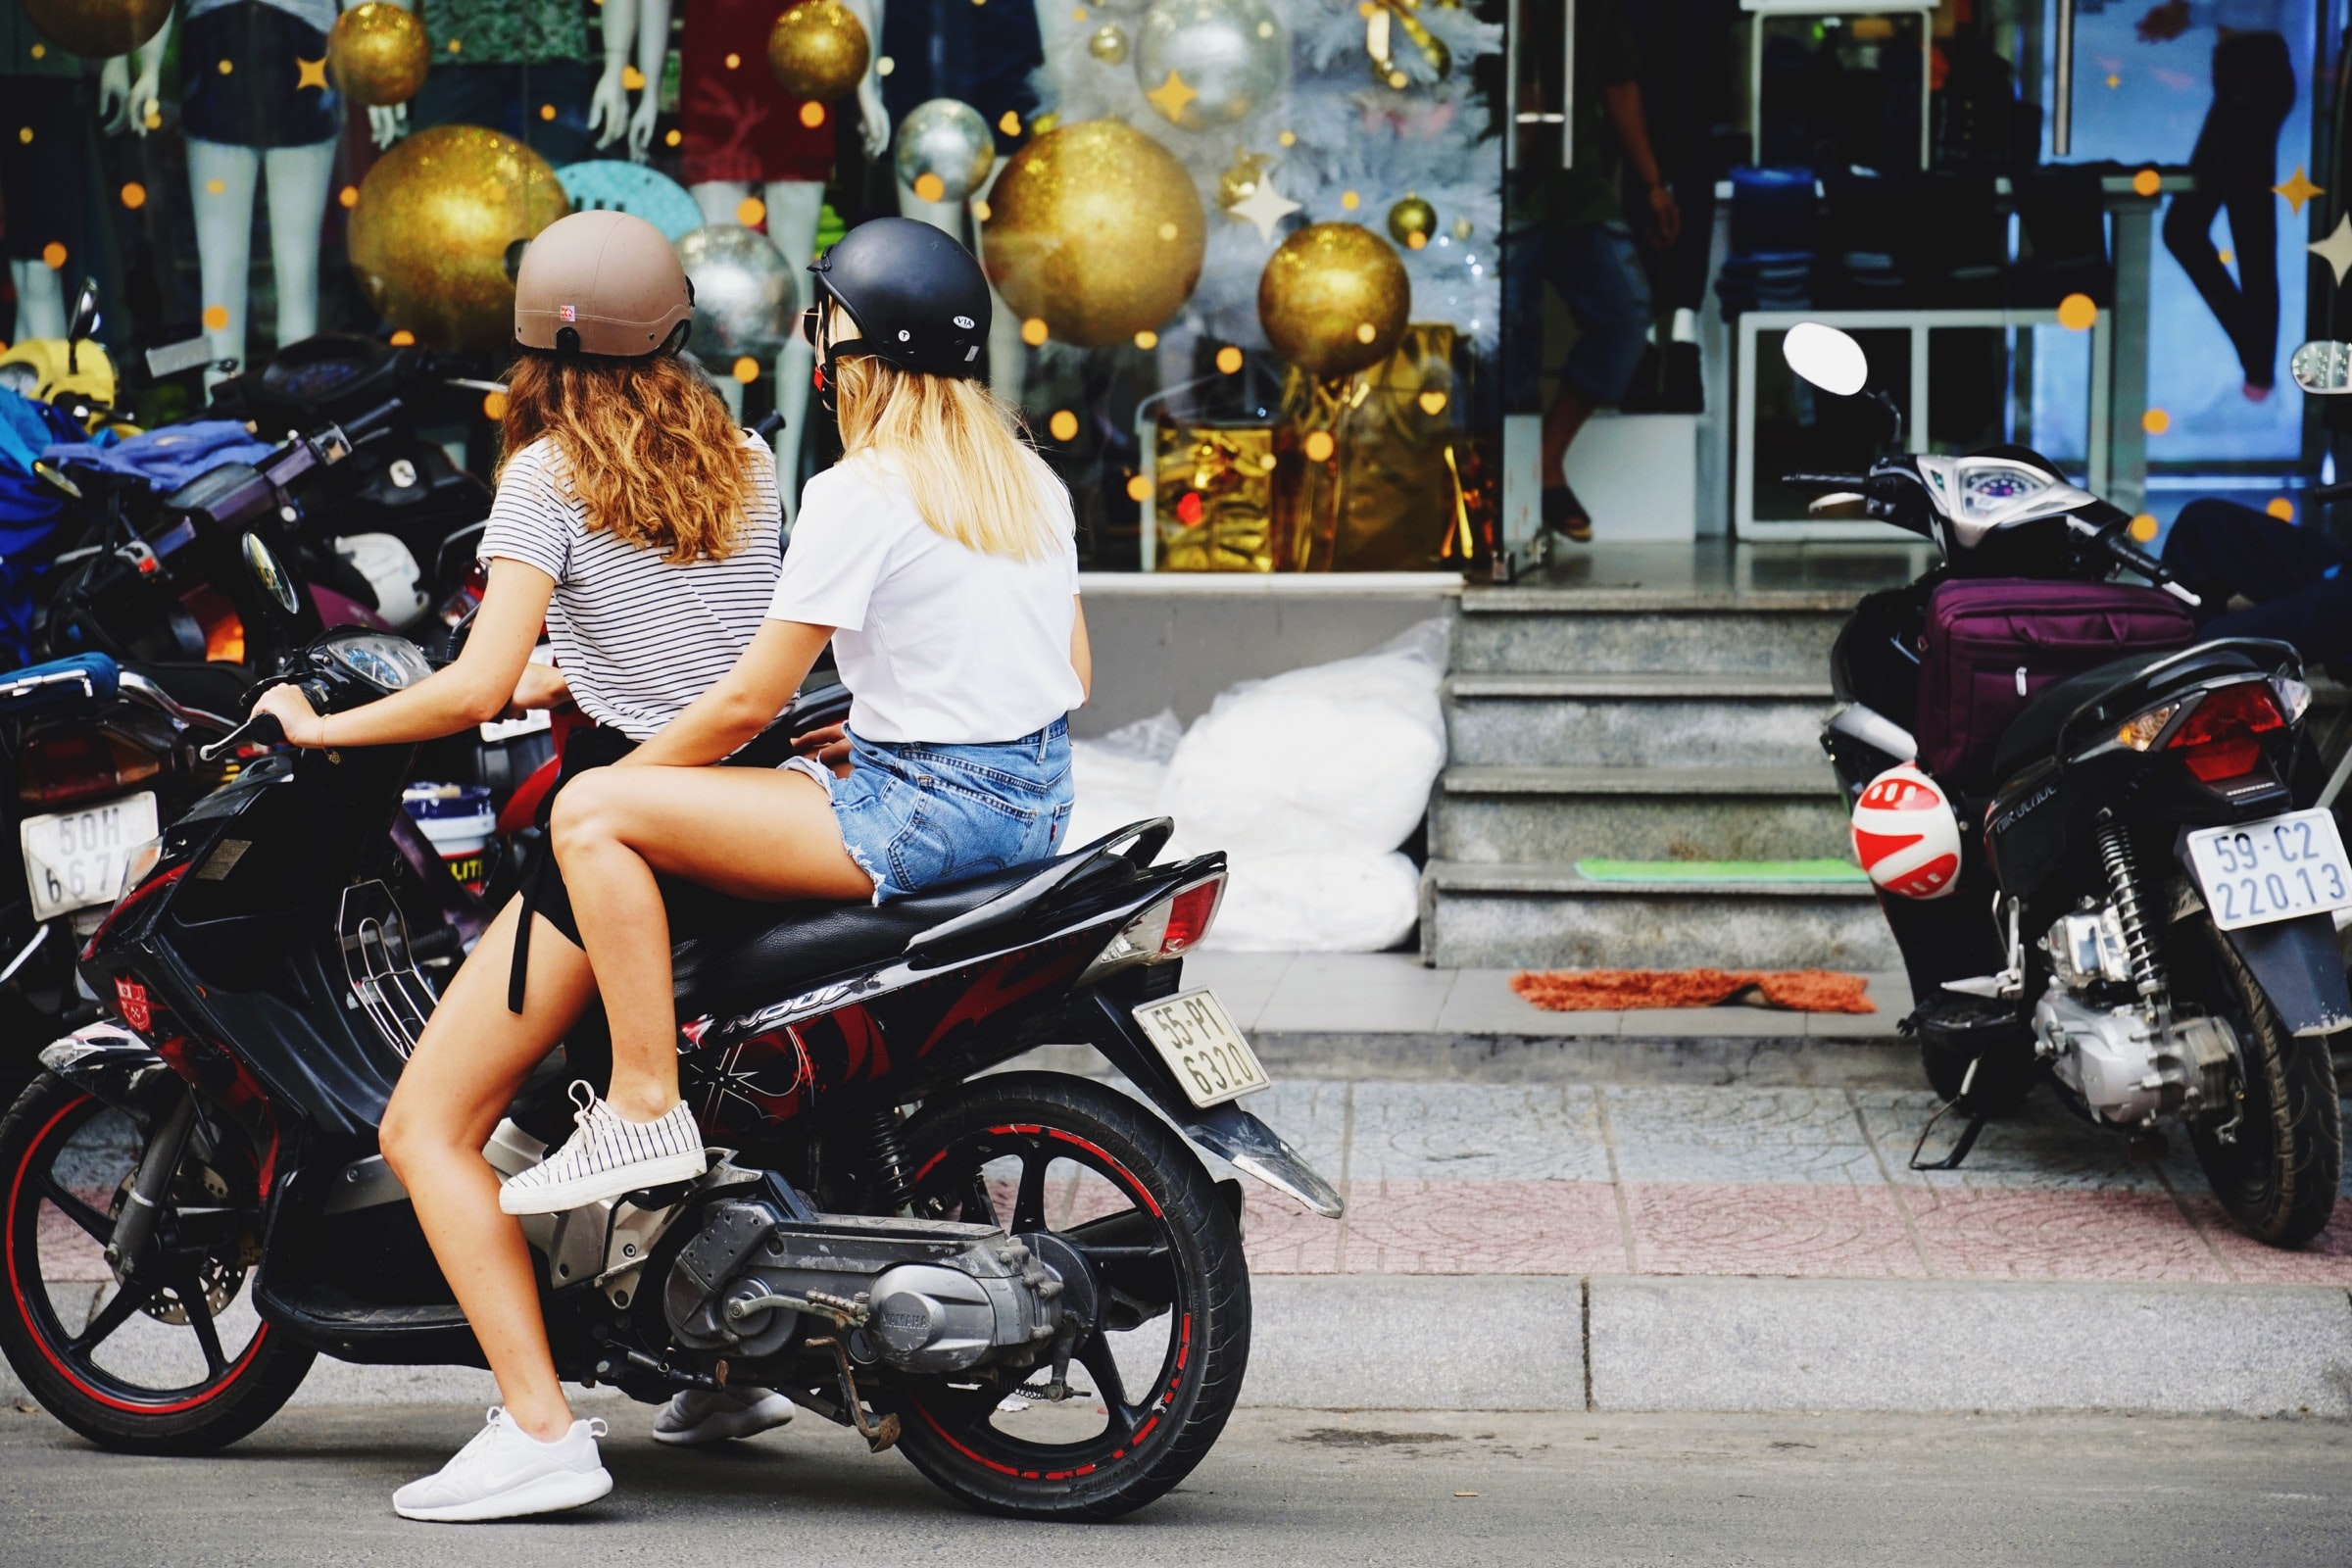 two women riding motorcycle